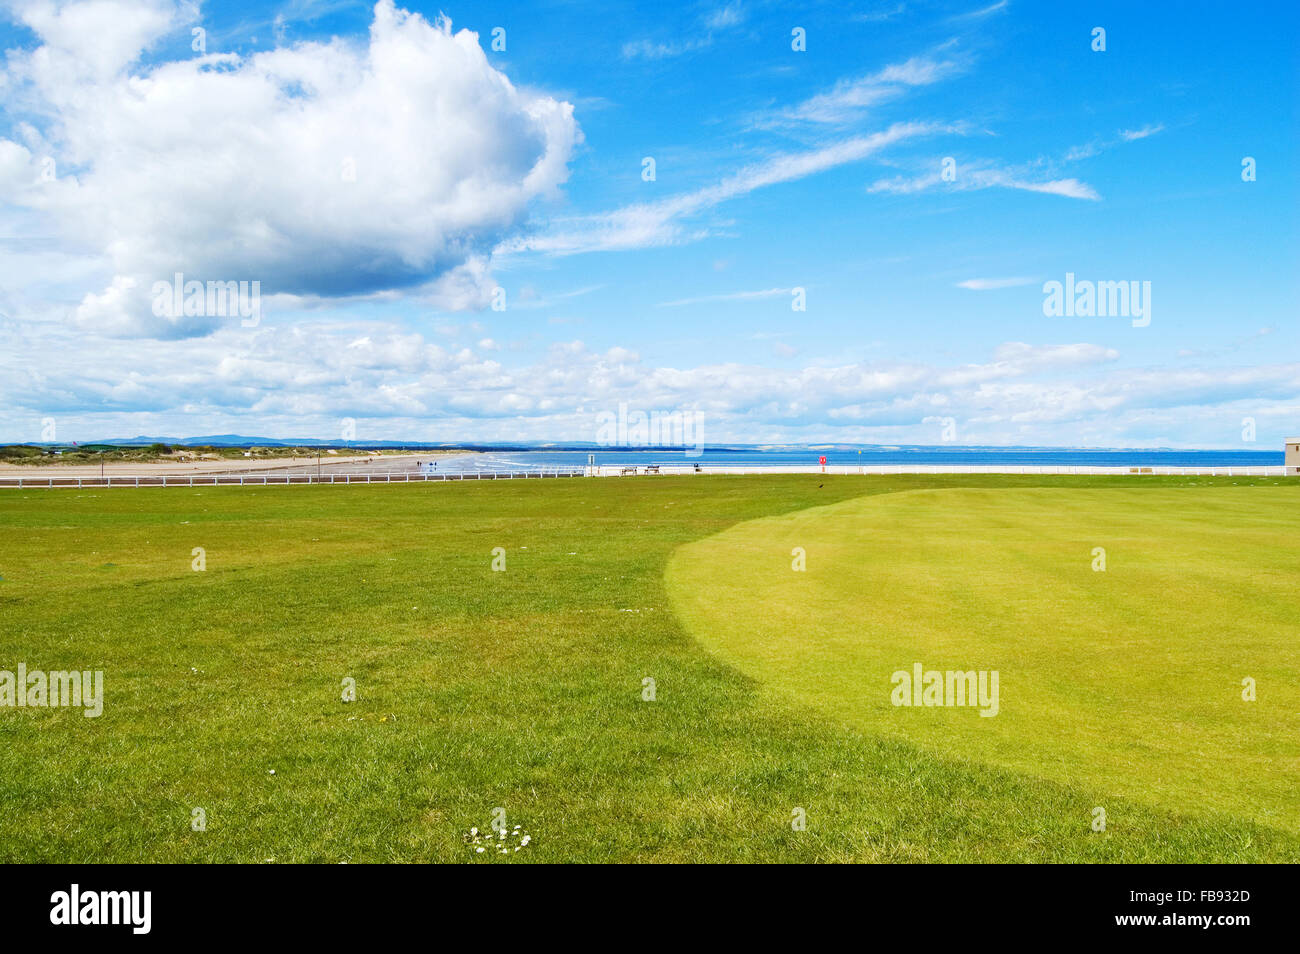 Background image location - Golf Green St Andrews Old Course Links On Background West Sands Beach Movie Location Chariots